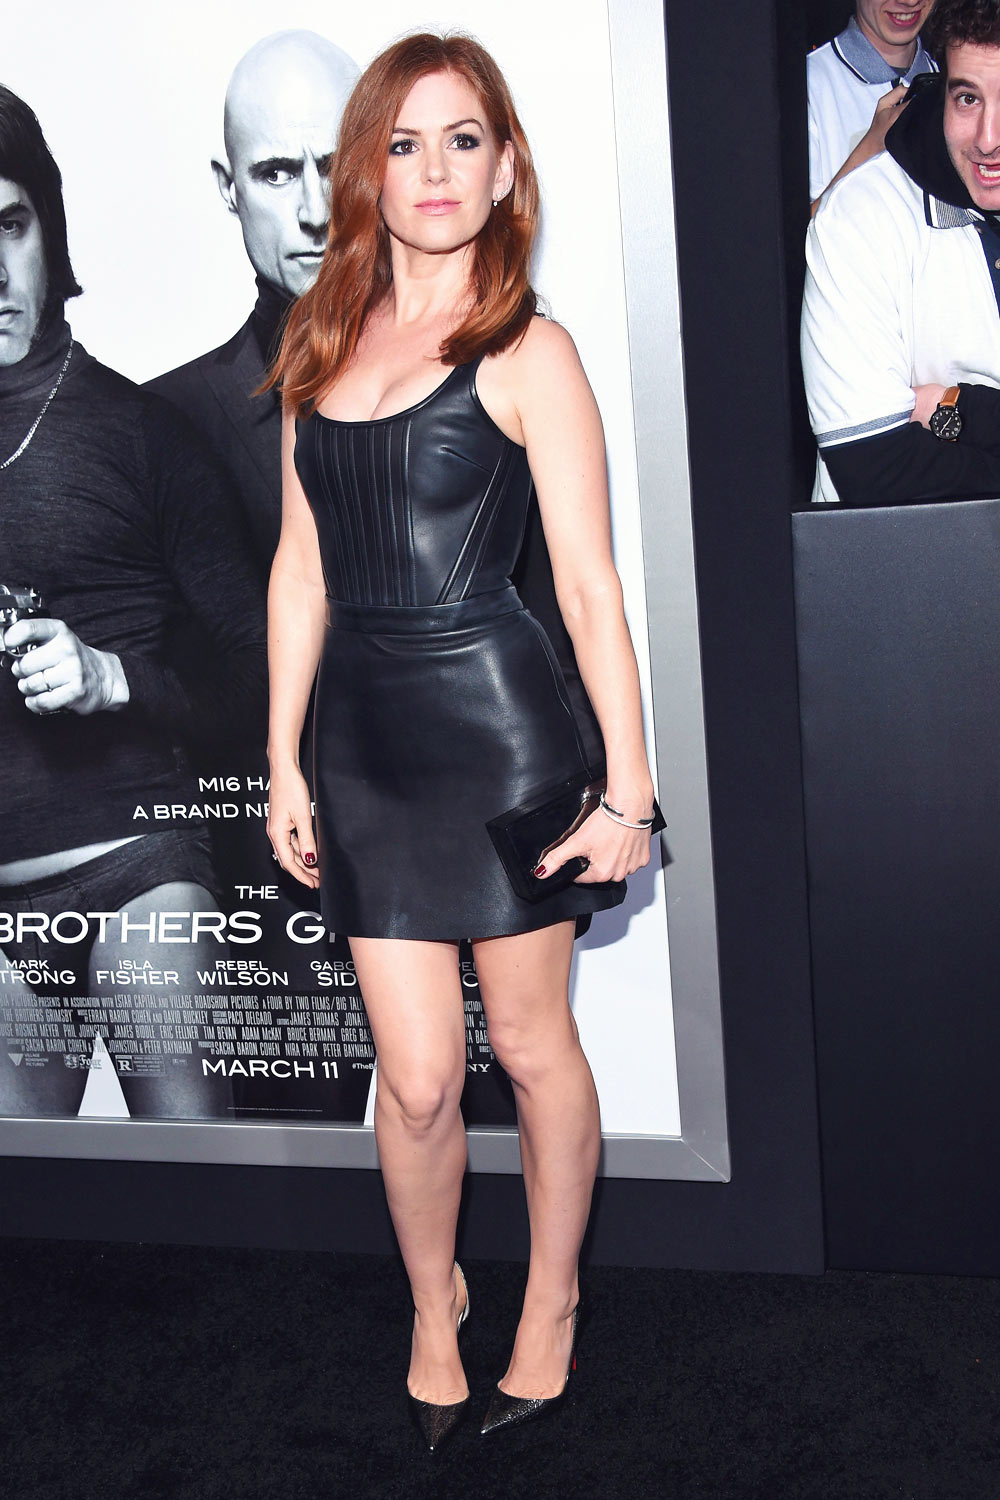 Isla Fisher attends the premiere The Brothers Grimsby